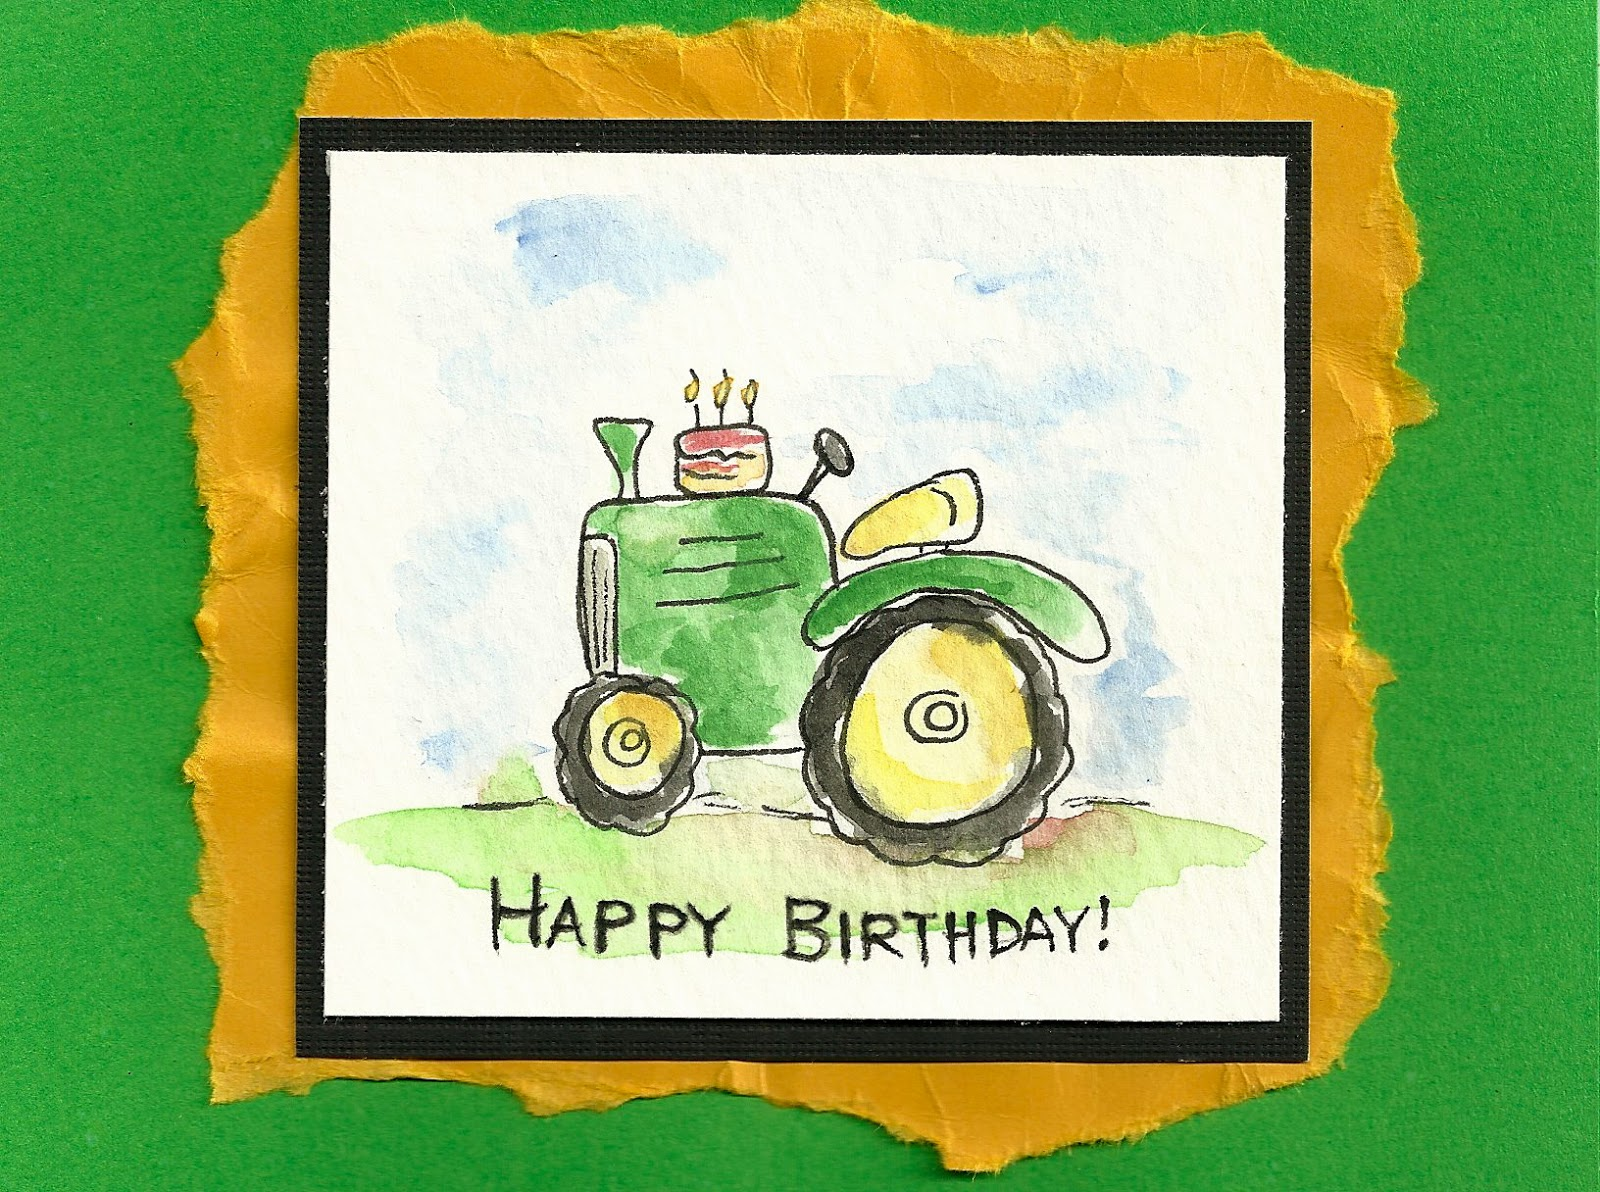 For Marks Birthday Card I Created This Playful Watercolor Of A Tractor With Cake On Top Overall Think The Is Lot Fun Featuring John Deere